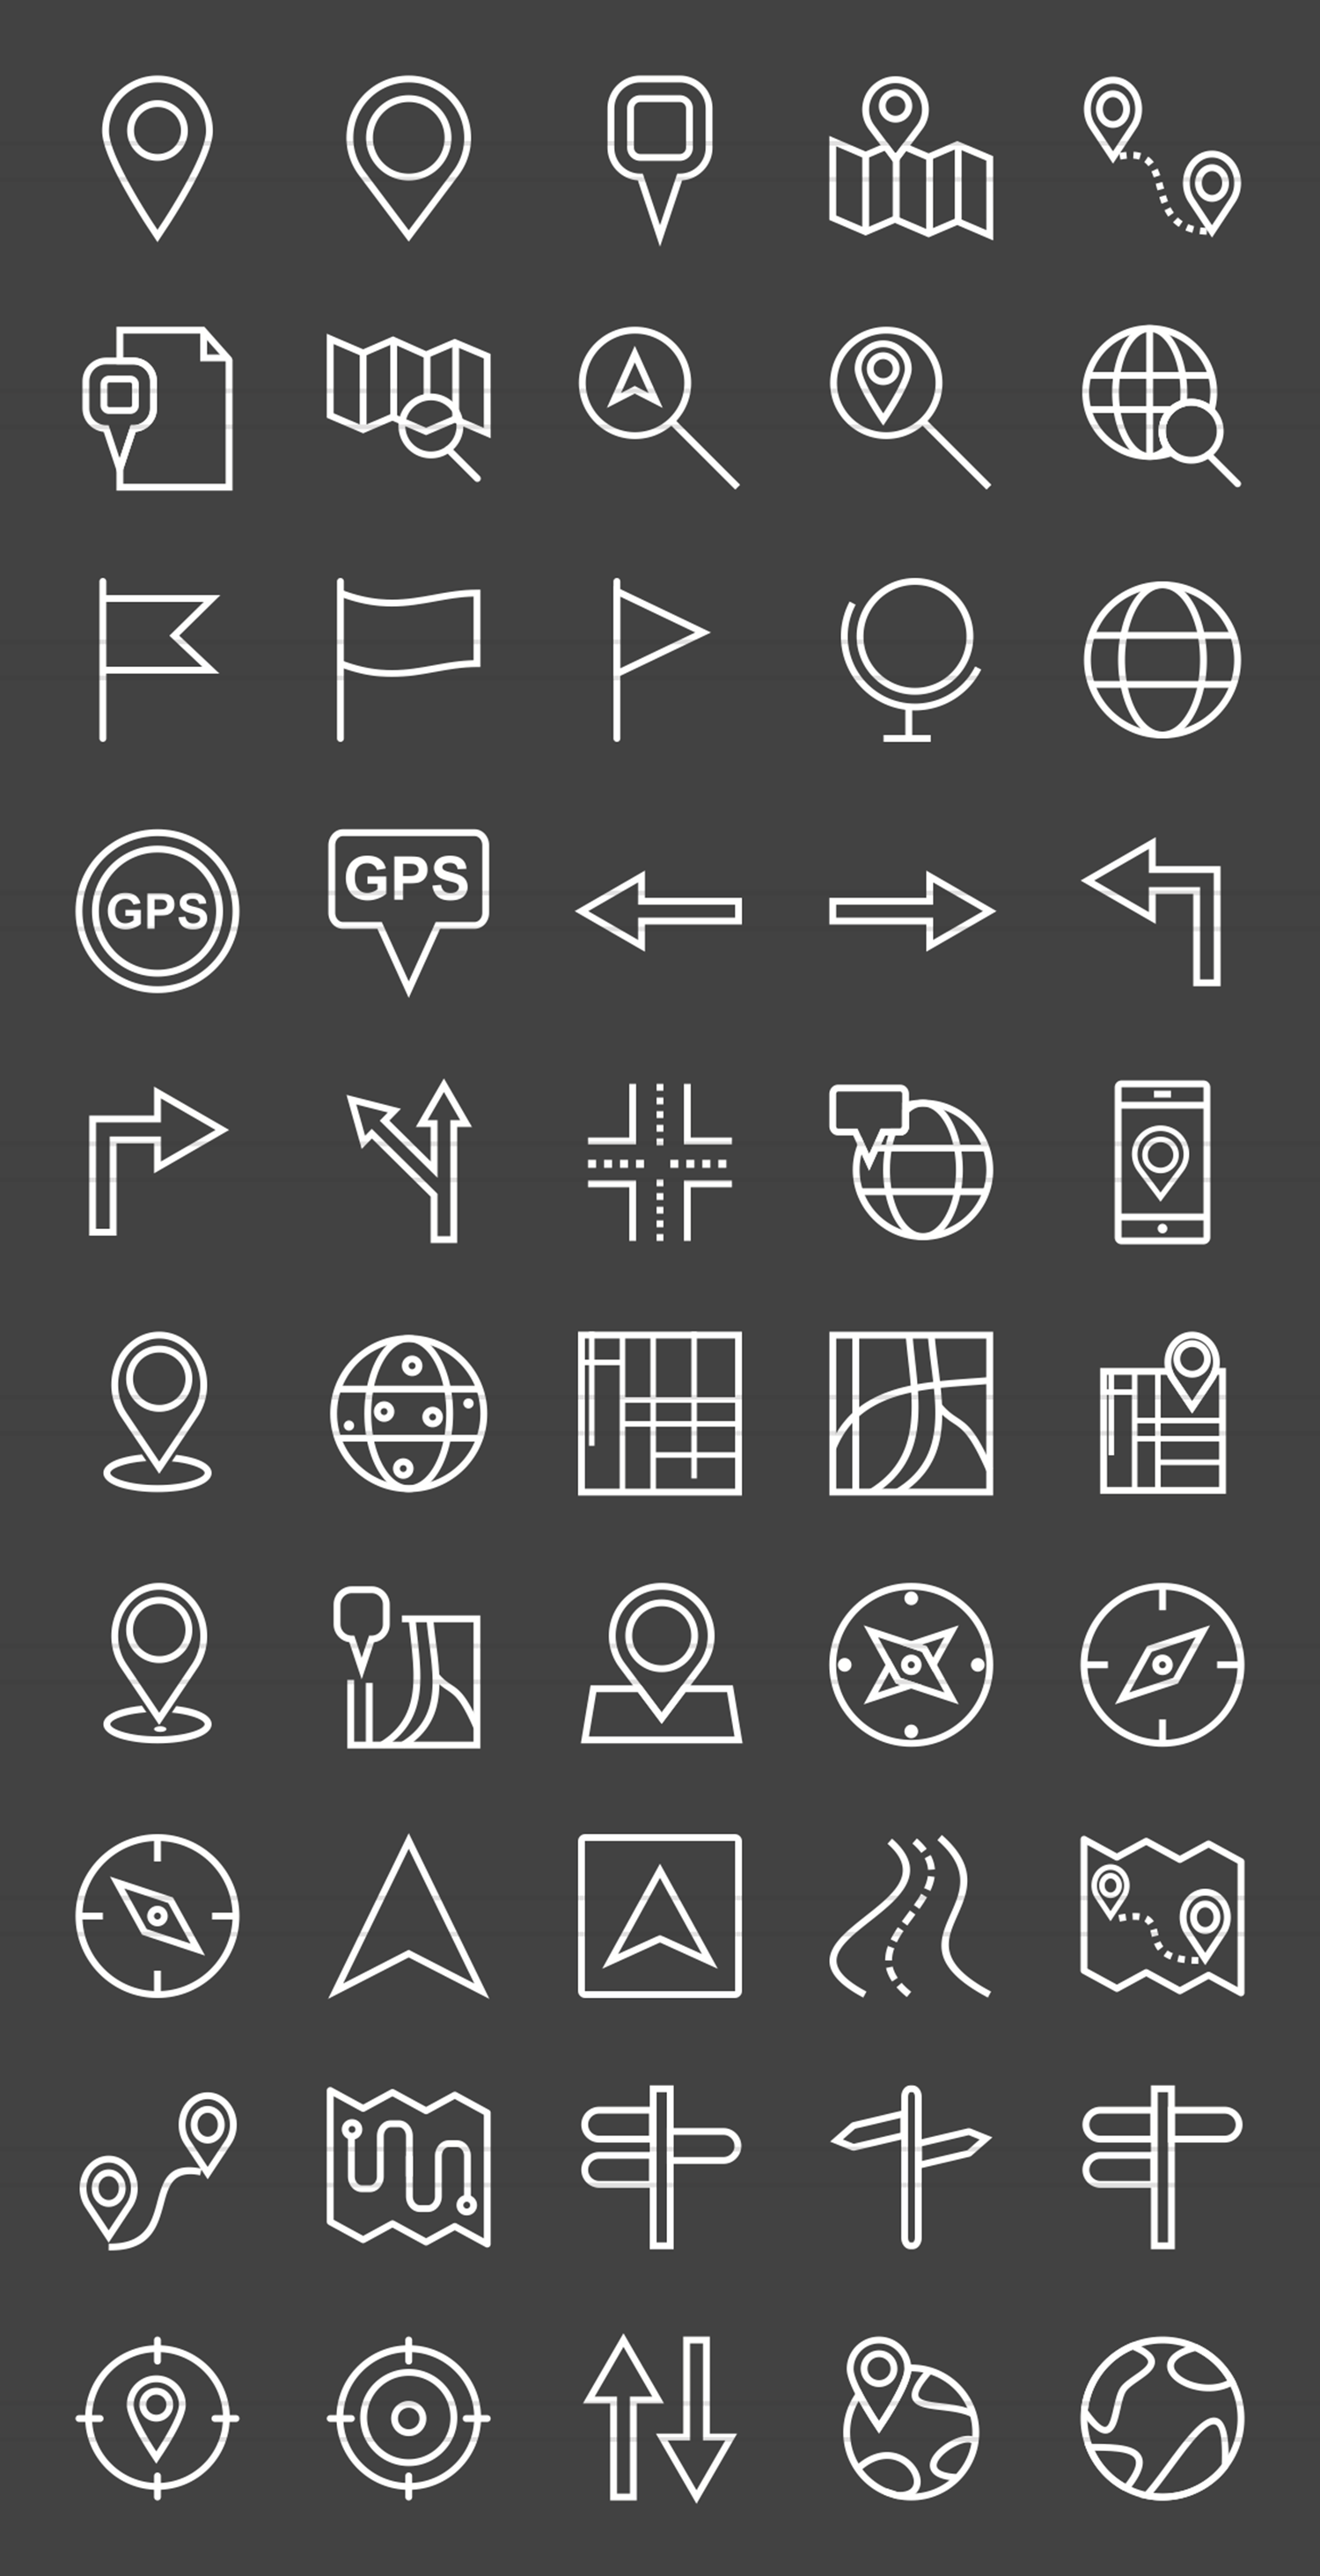 50 Maps & Navigation Line Inverted Icons example image 2